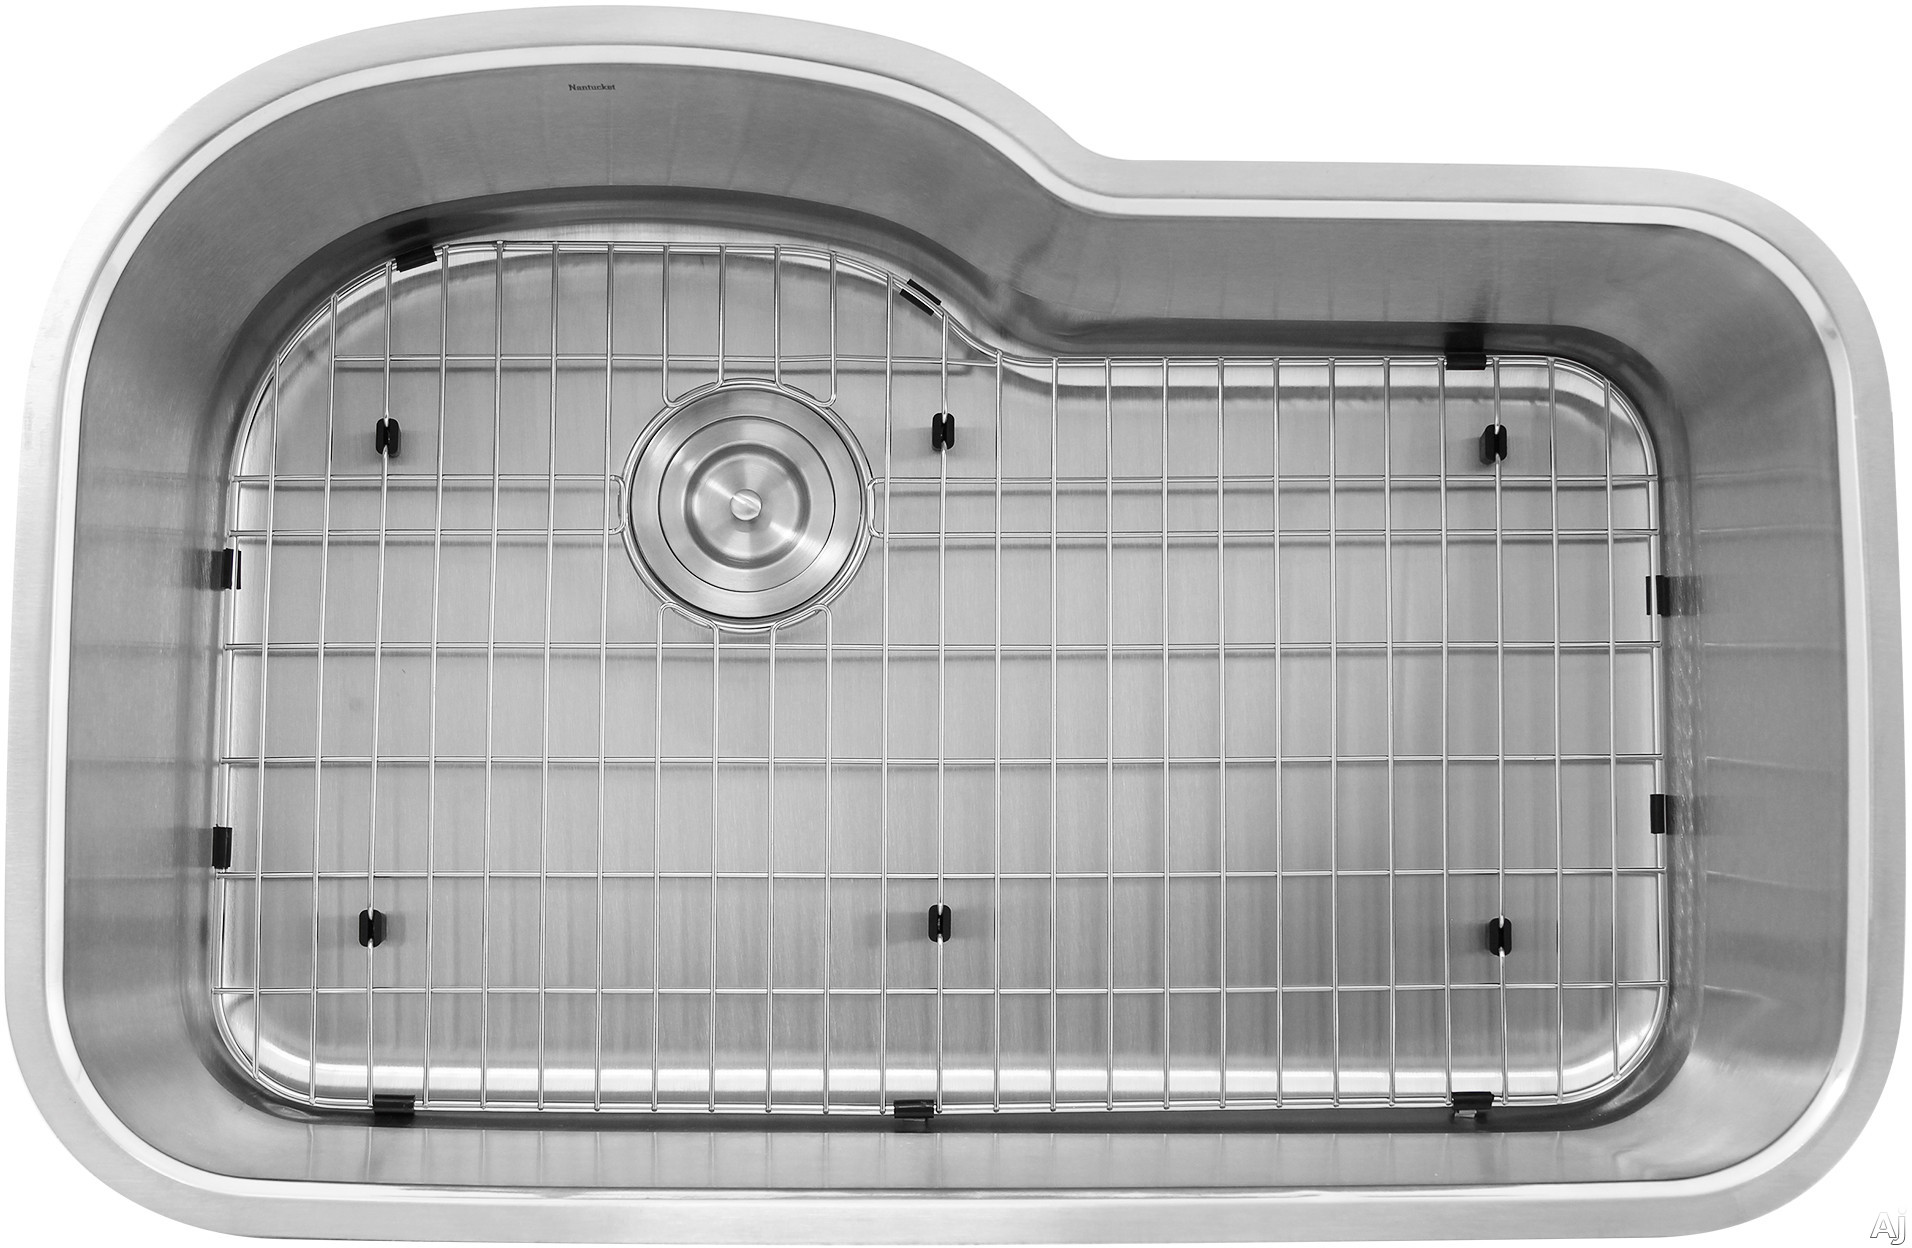 Nantucket Sinks Quidnet Collection MOBYXL18 31 Inch Oblong Undermount Stainless Steel Kitchen Sink with 18 Gauge Stainless Steel, 2 Bottom Grids and Drain